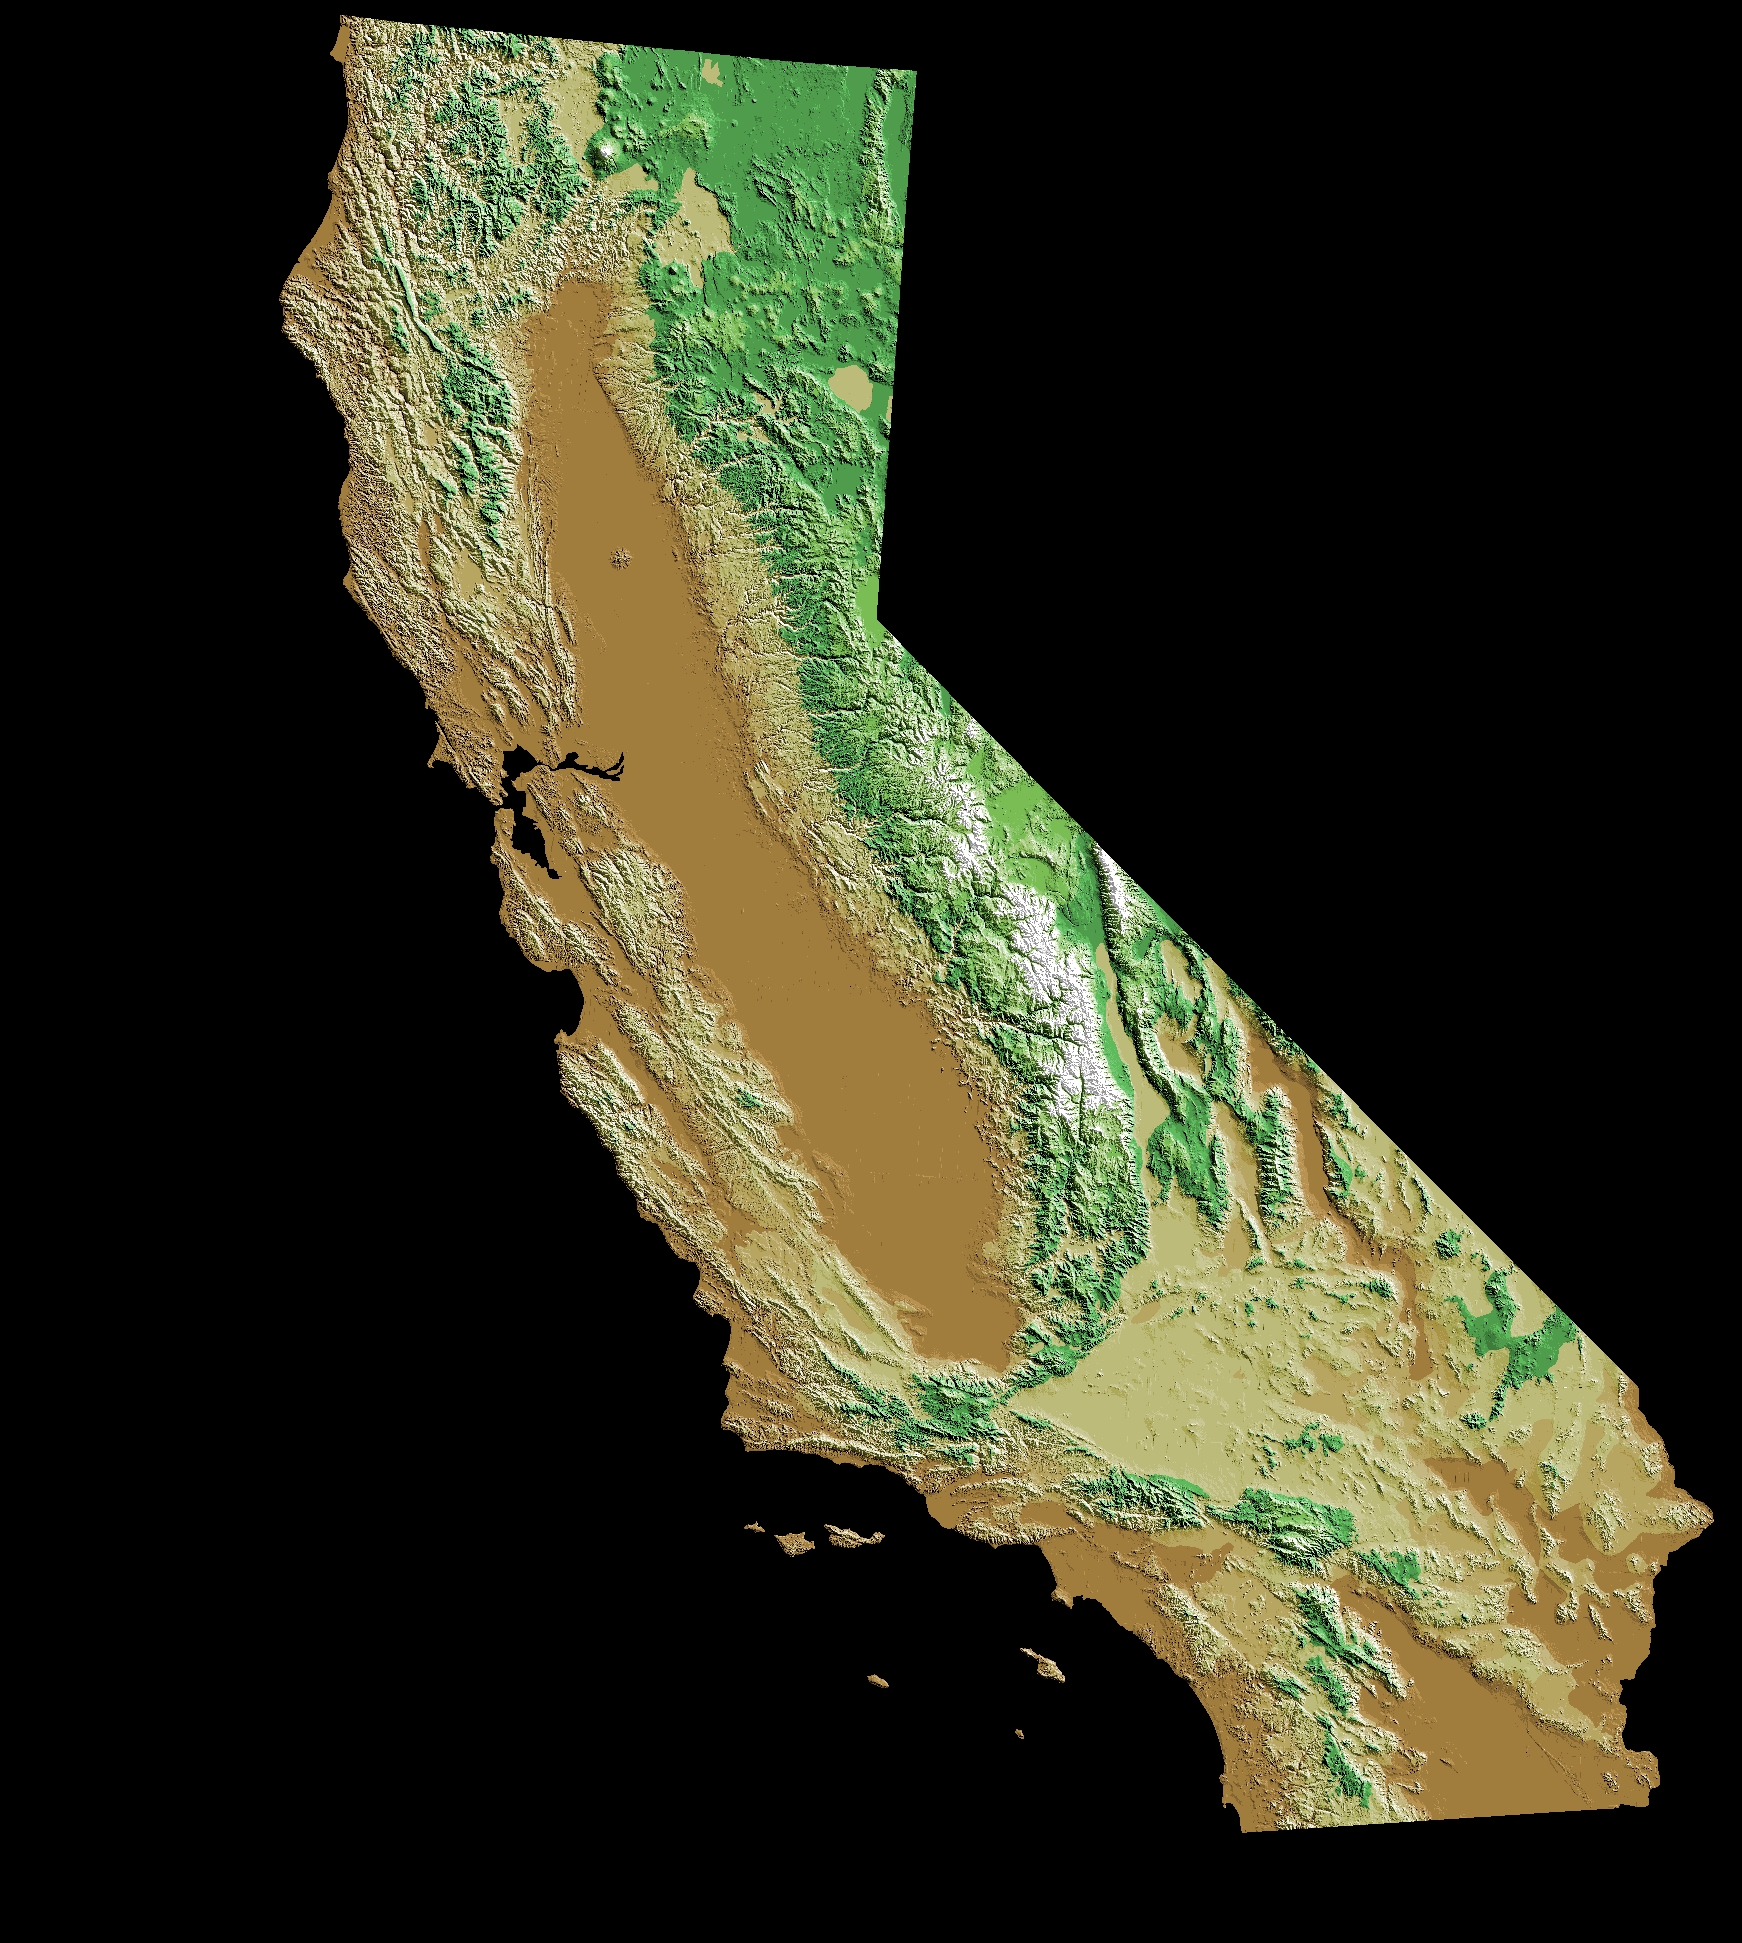 Elevation Map Of California, Usa - Mapsroom | Mapsroom - Relief Map Of Southern California